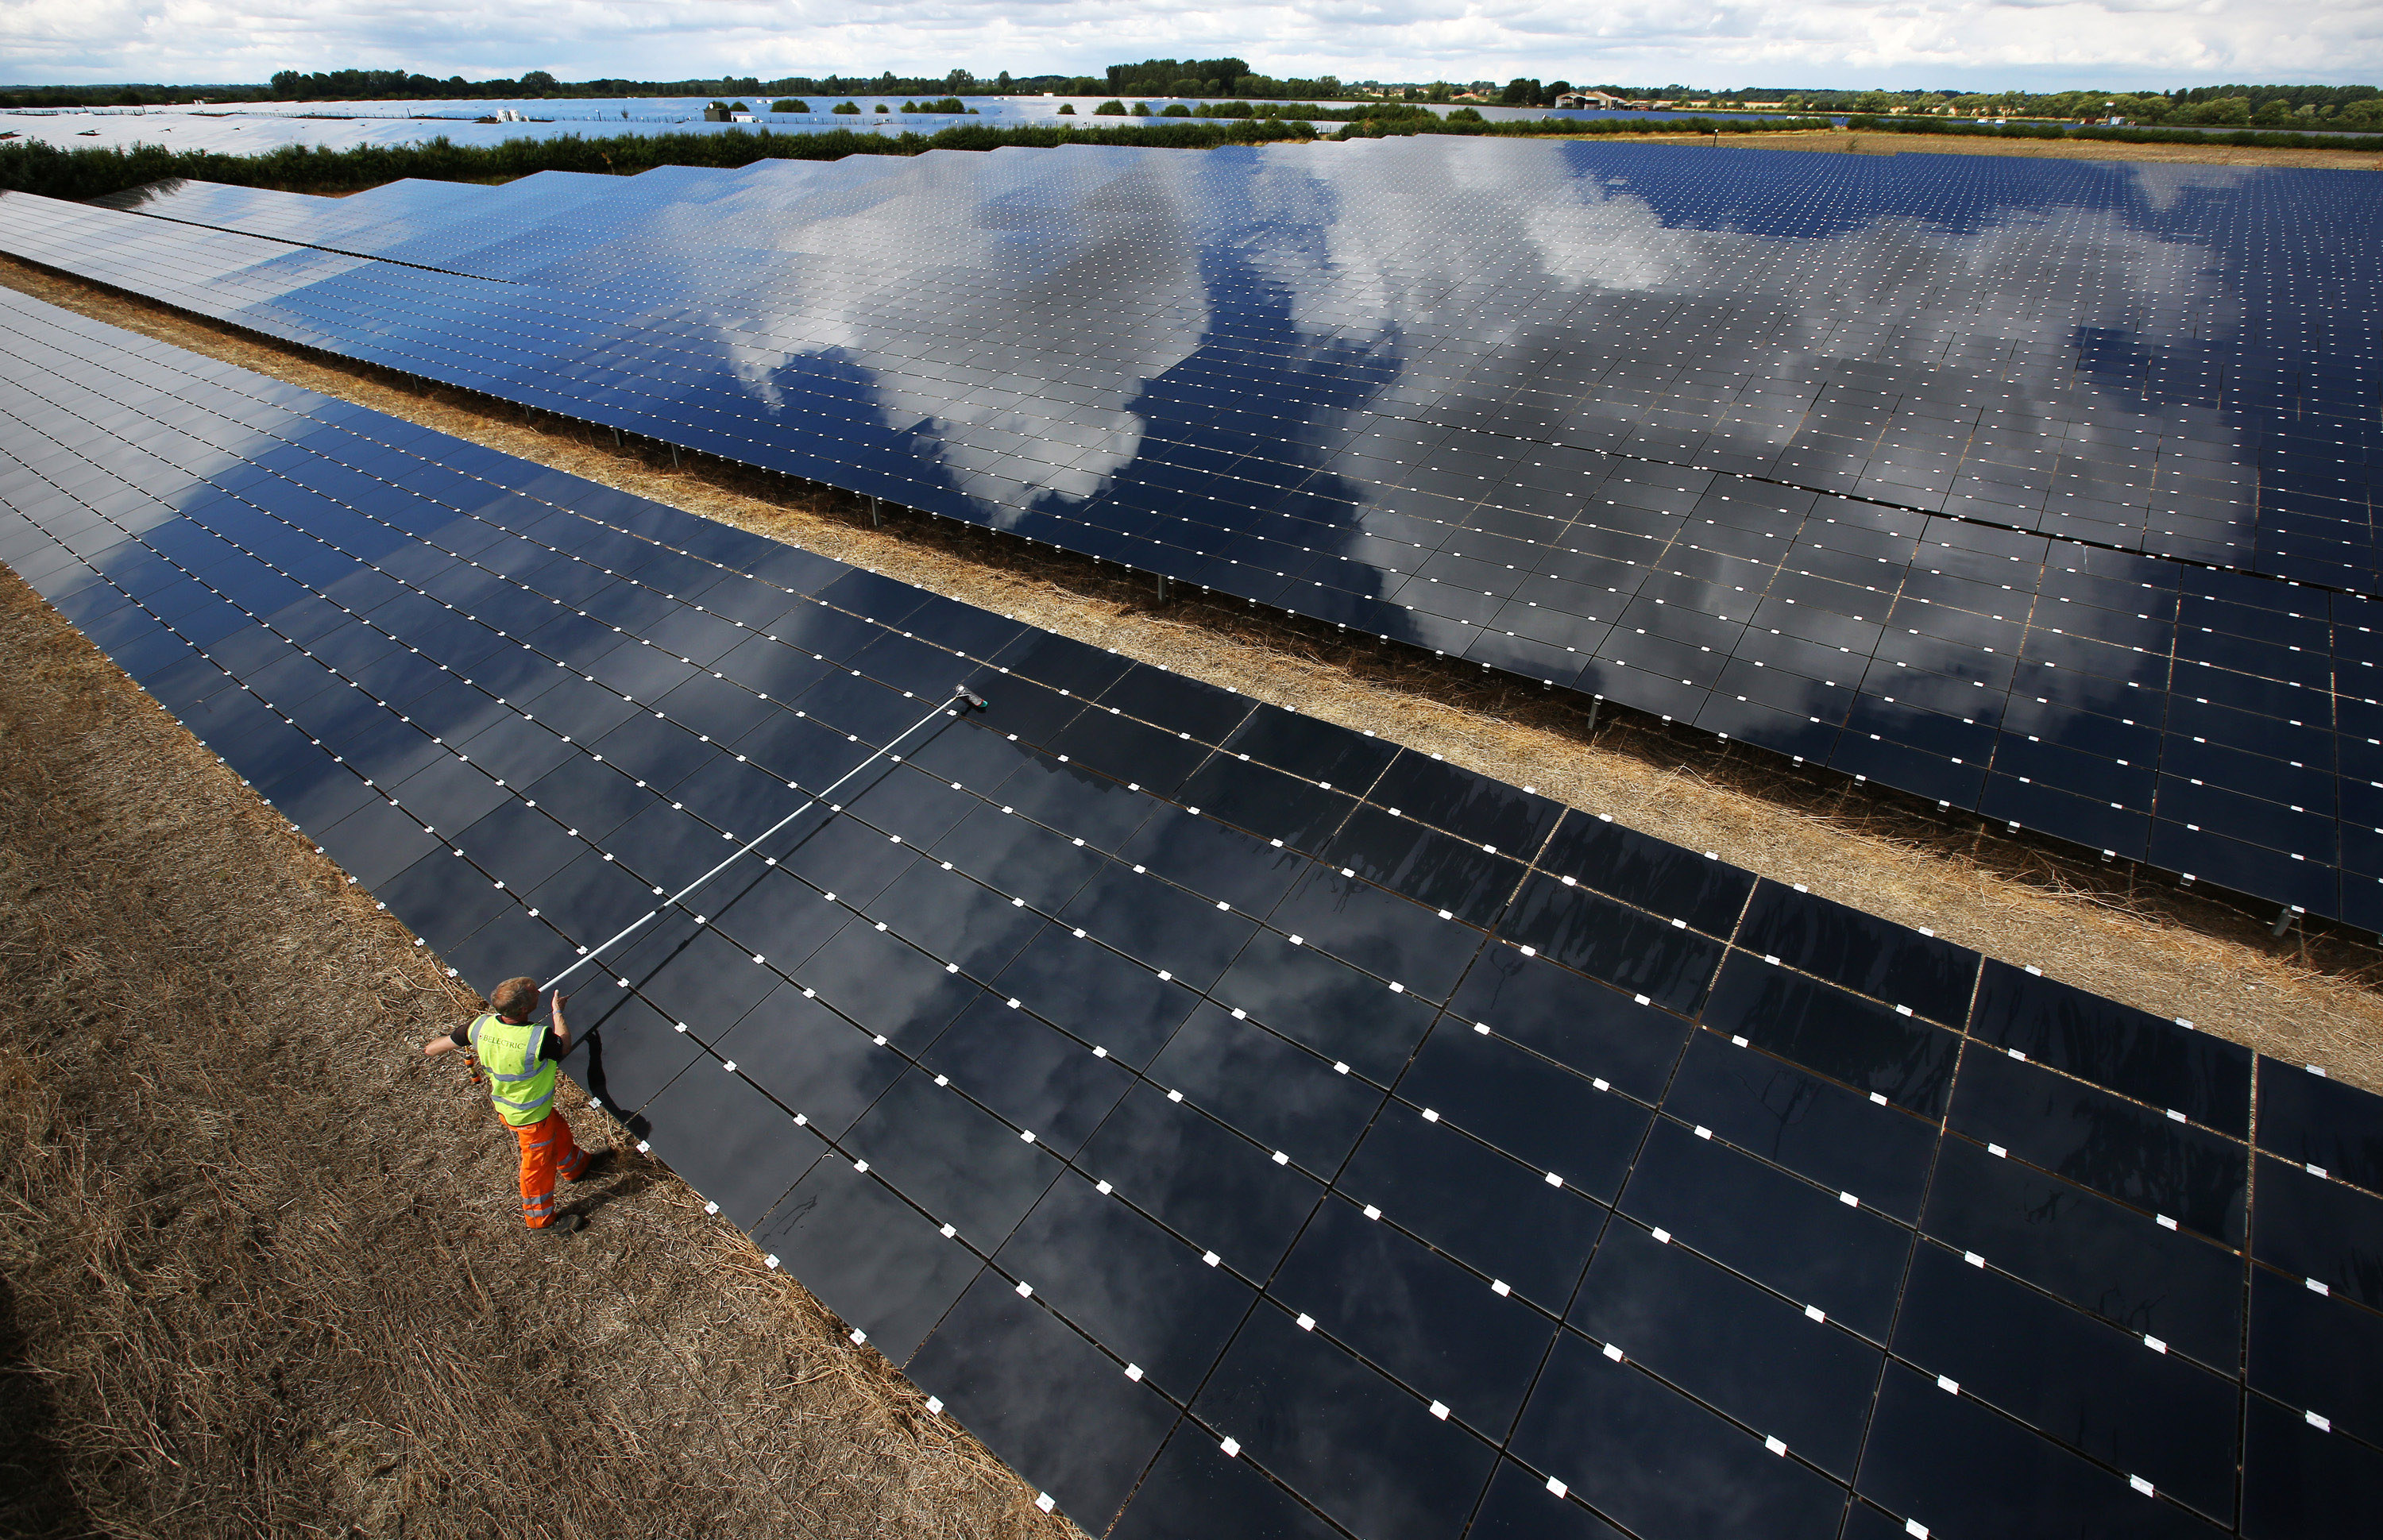 It remains to be seen what Donald Trump's election means for the solar industry in general and SolarCity in Buffalo in particular. (Peter Macdiarmid/Getty Images file photo)